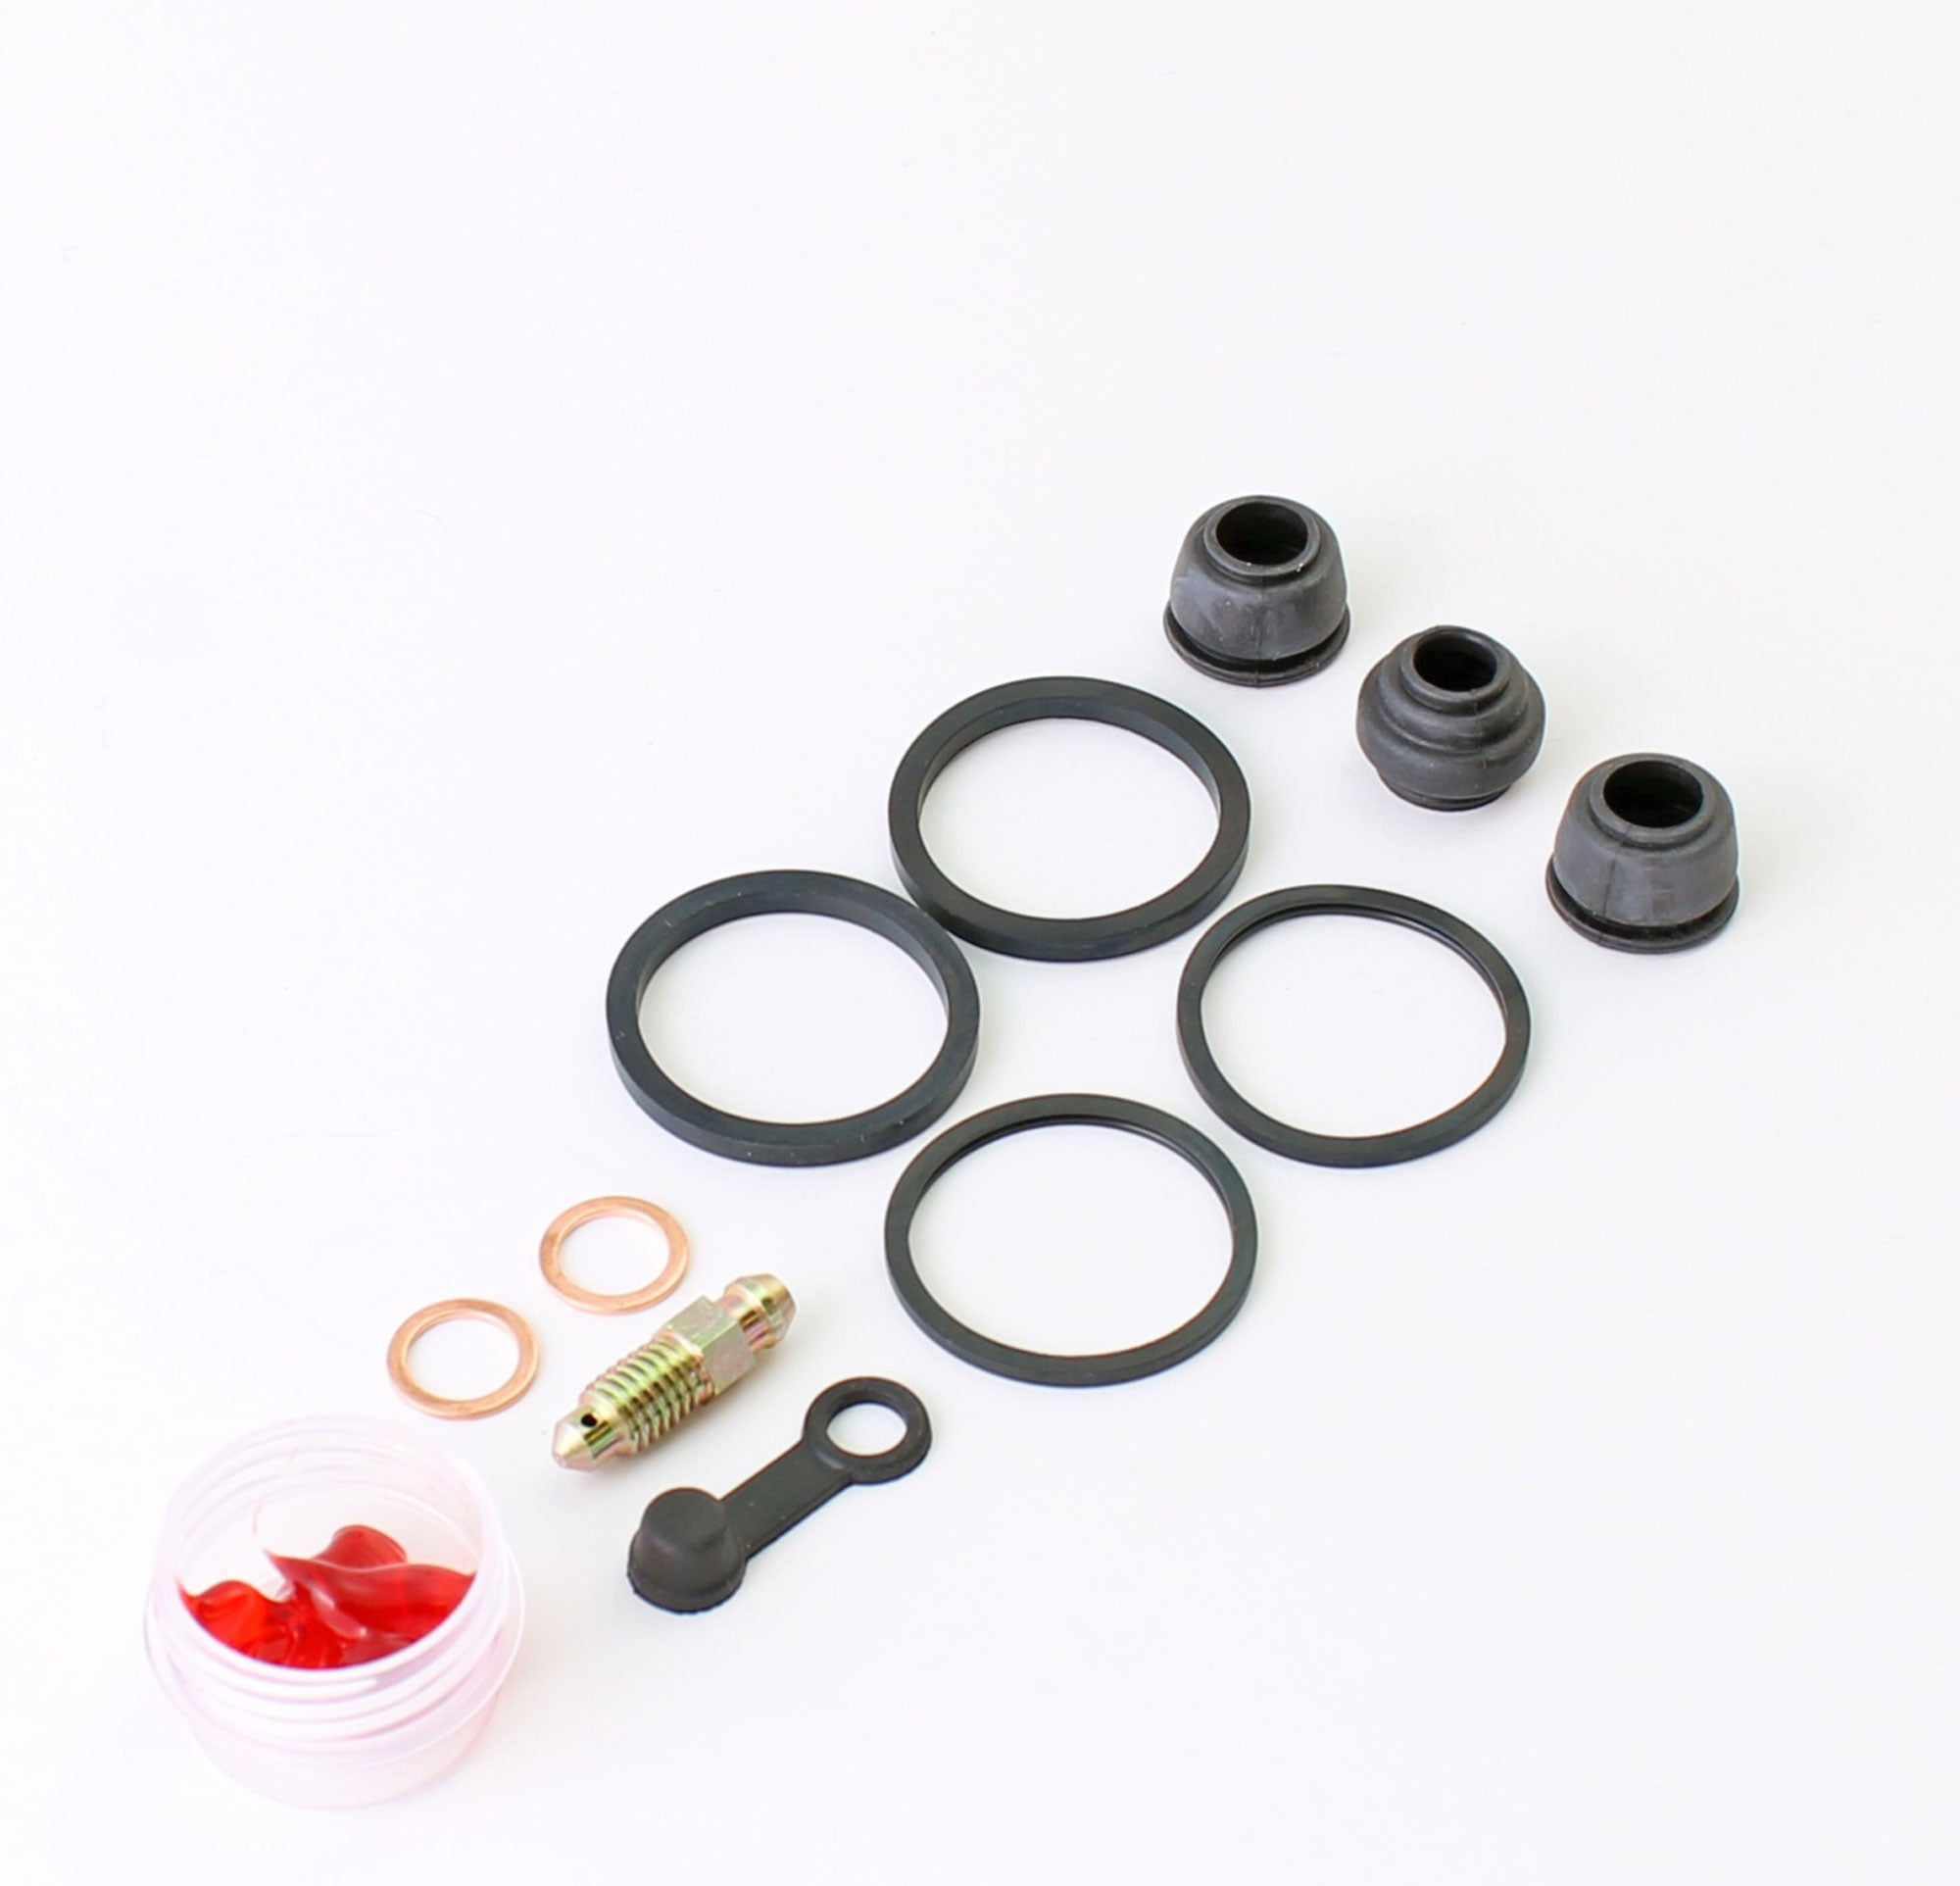 Brakecrafters Caliper Rebuild Kit 1984 - 1986 Honda VF1000 Interceptor - Front Brake Caliper Seal Kit